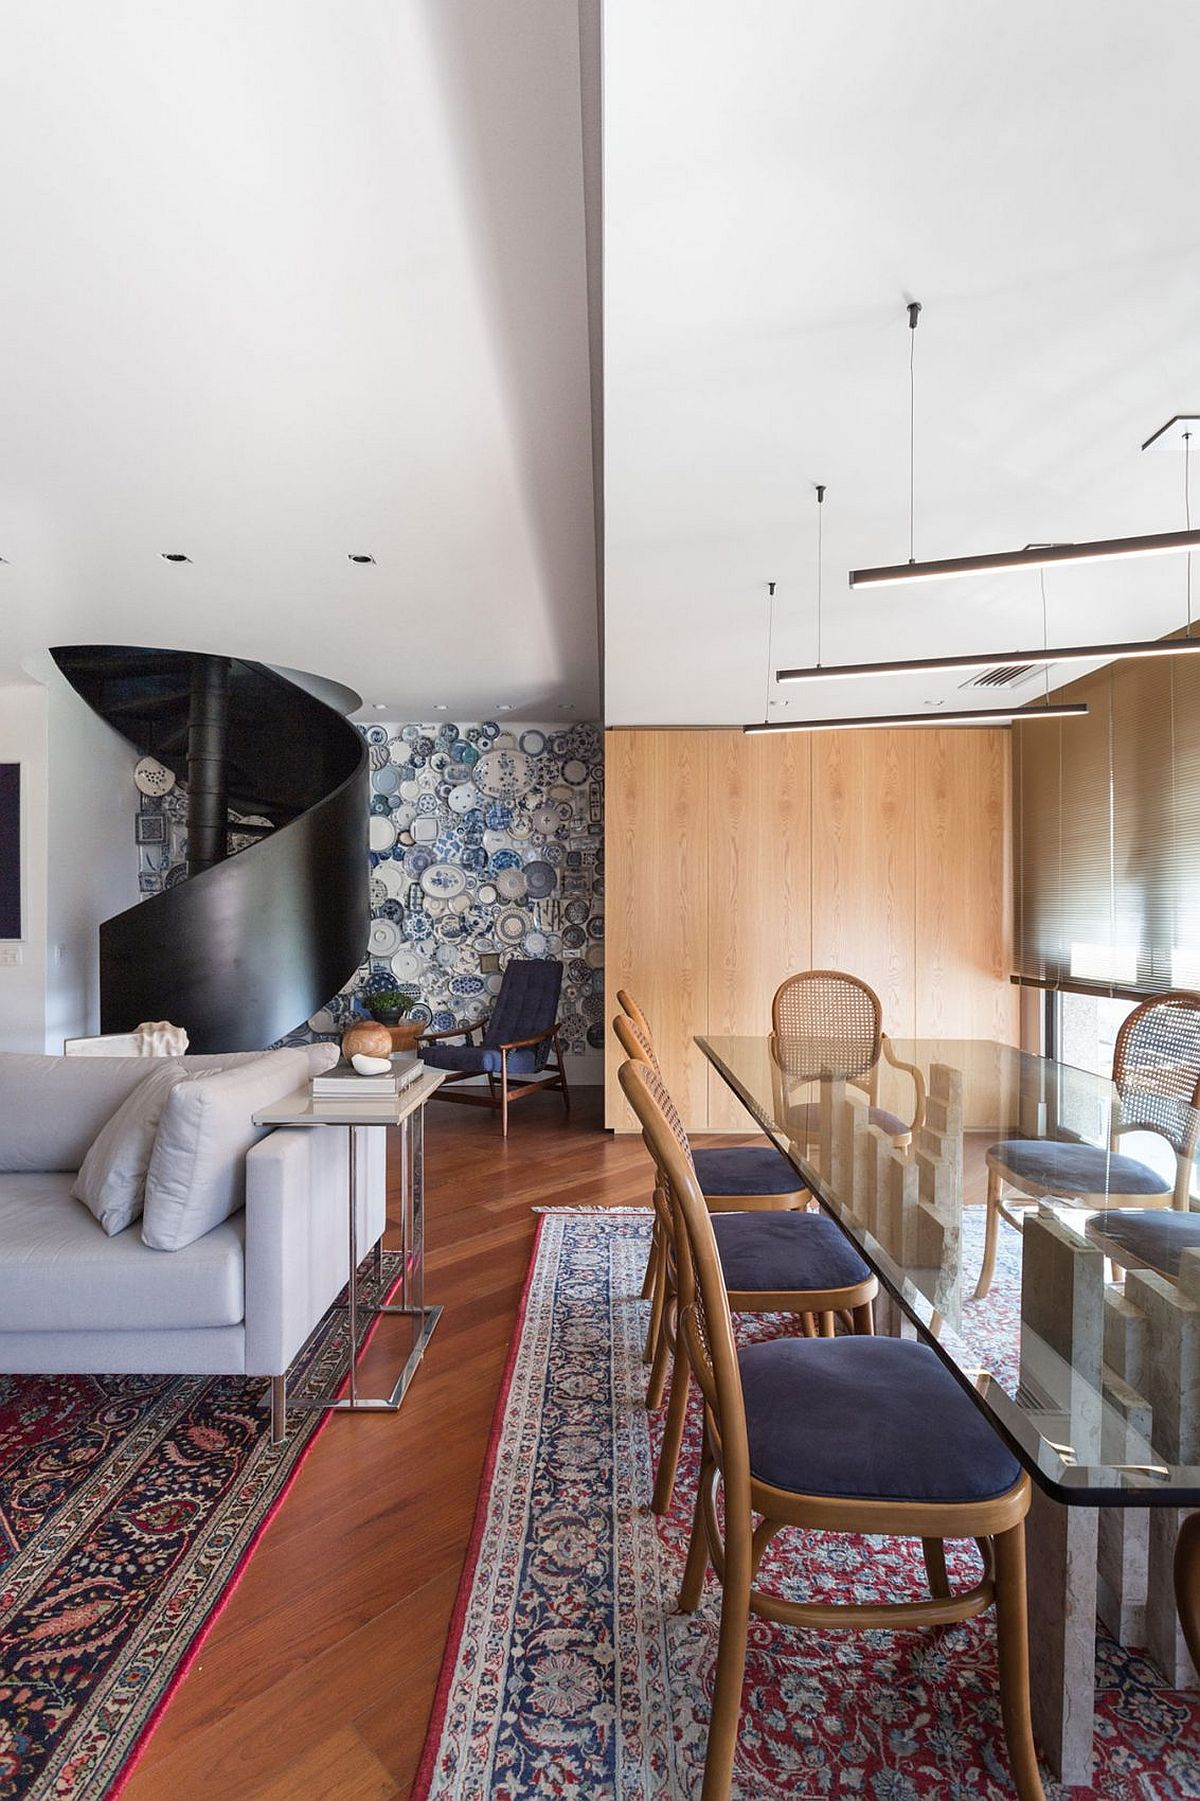 Rugs and accent wall covered with plates add pattern to the modern interior